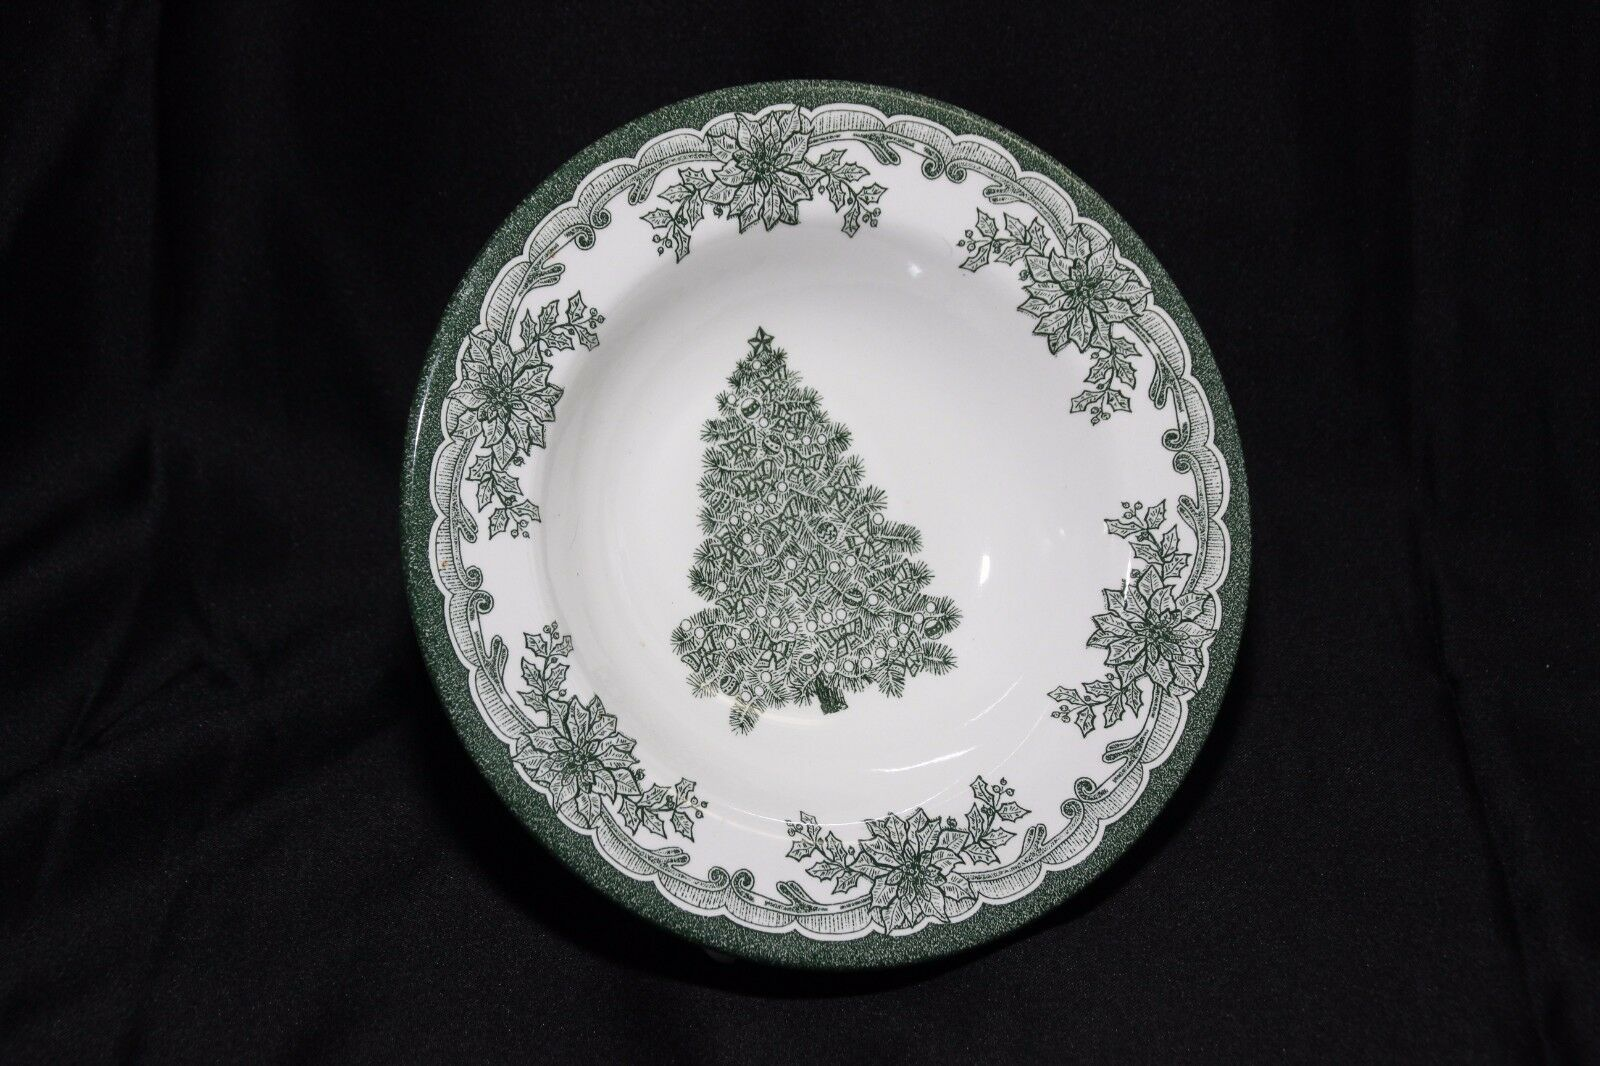 Staffordshire Engravings Yuletide Green Salad Plates and Soup Bowls image 2